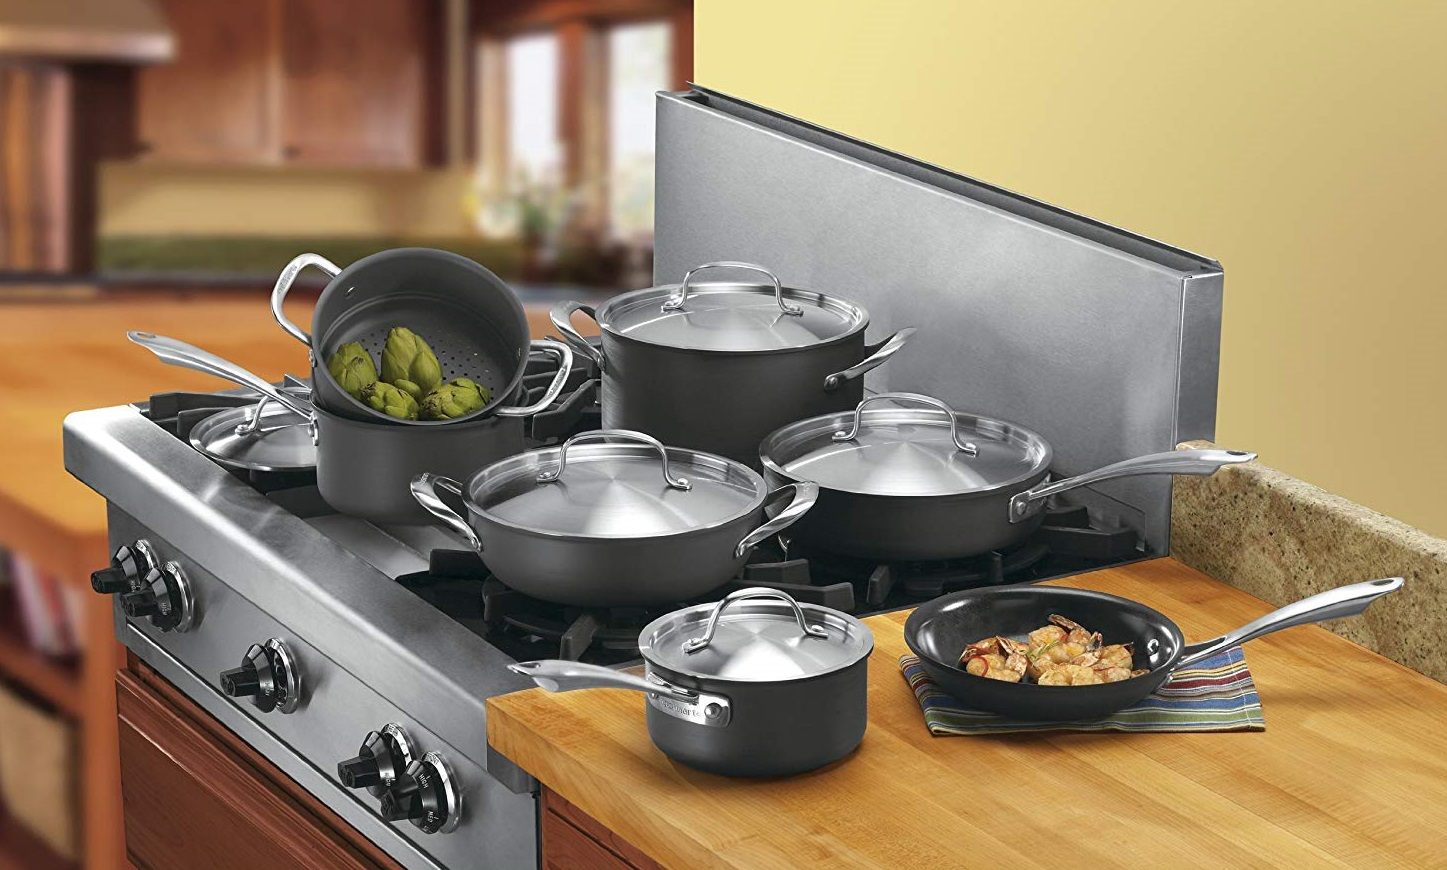 Best Cookware Set According To Consumer Reports Buying Guide